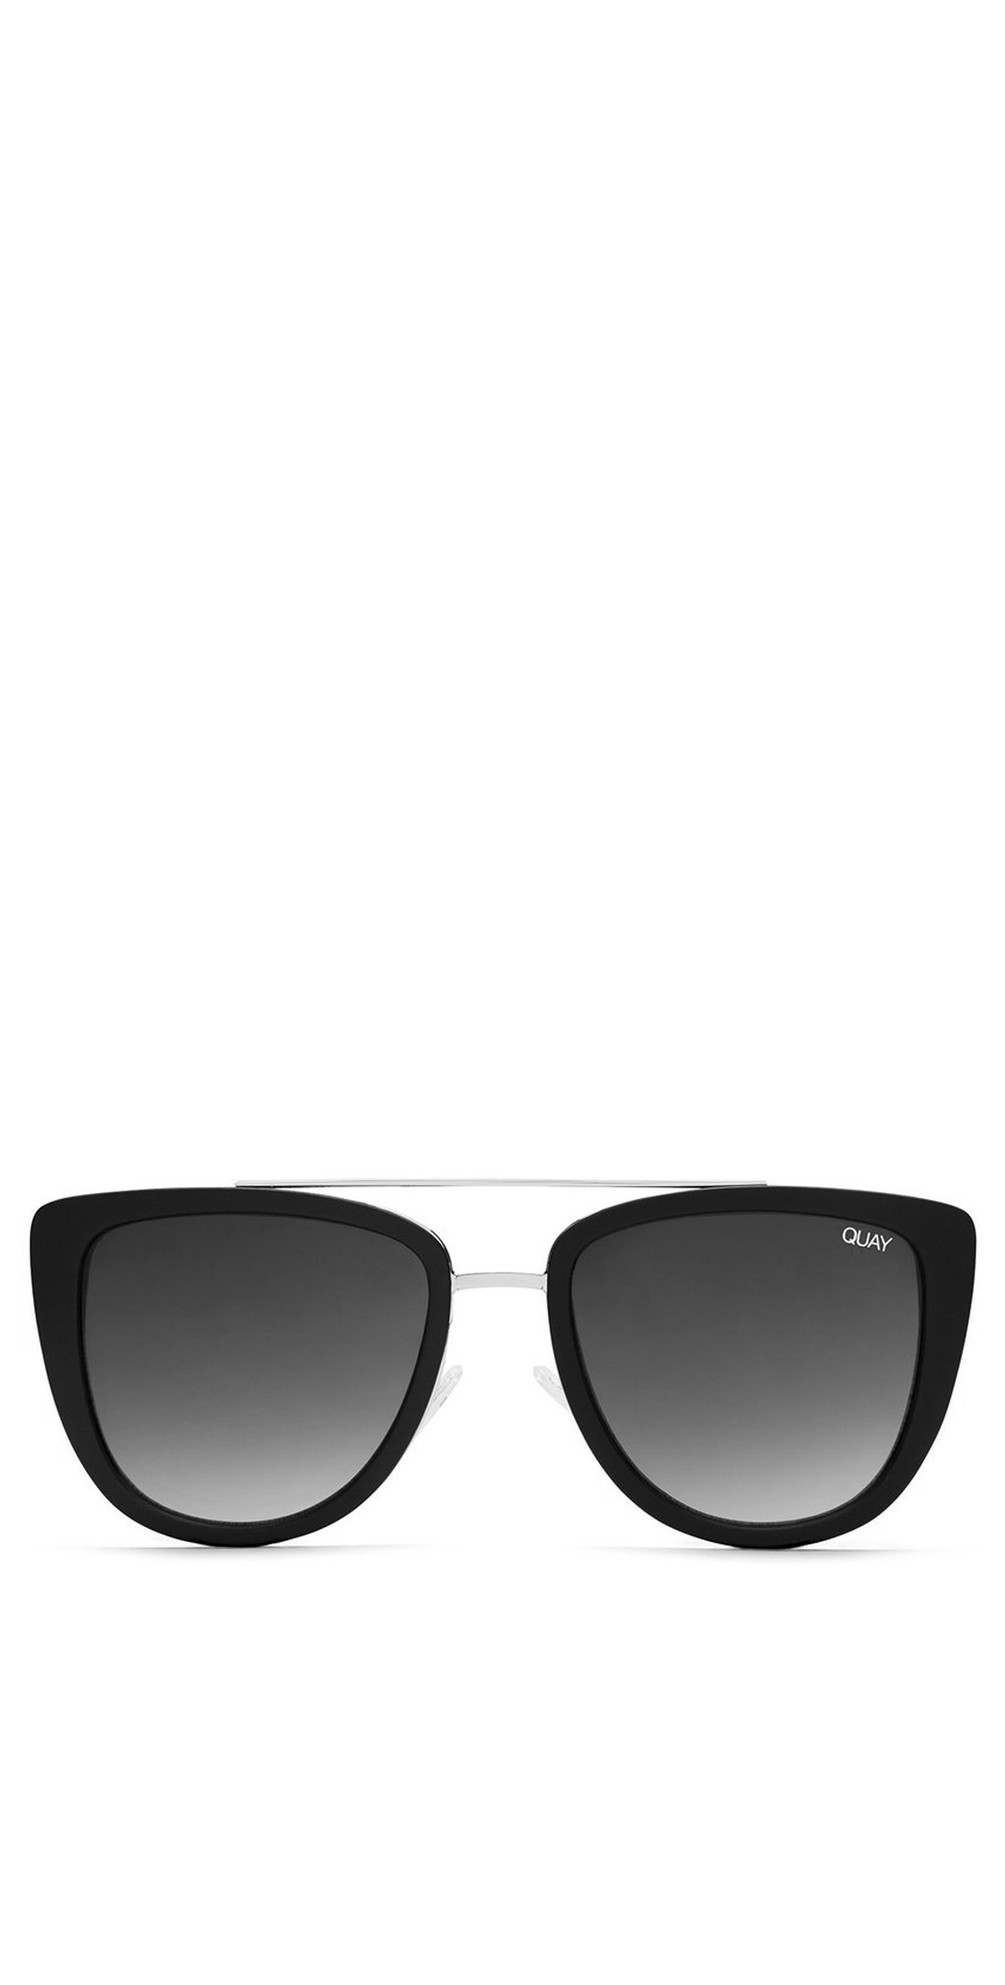 French Kiss Sunglasses main image